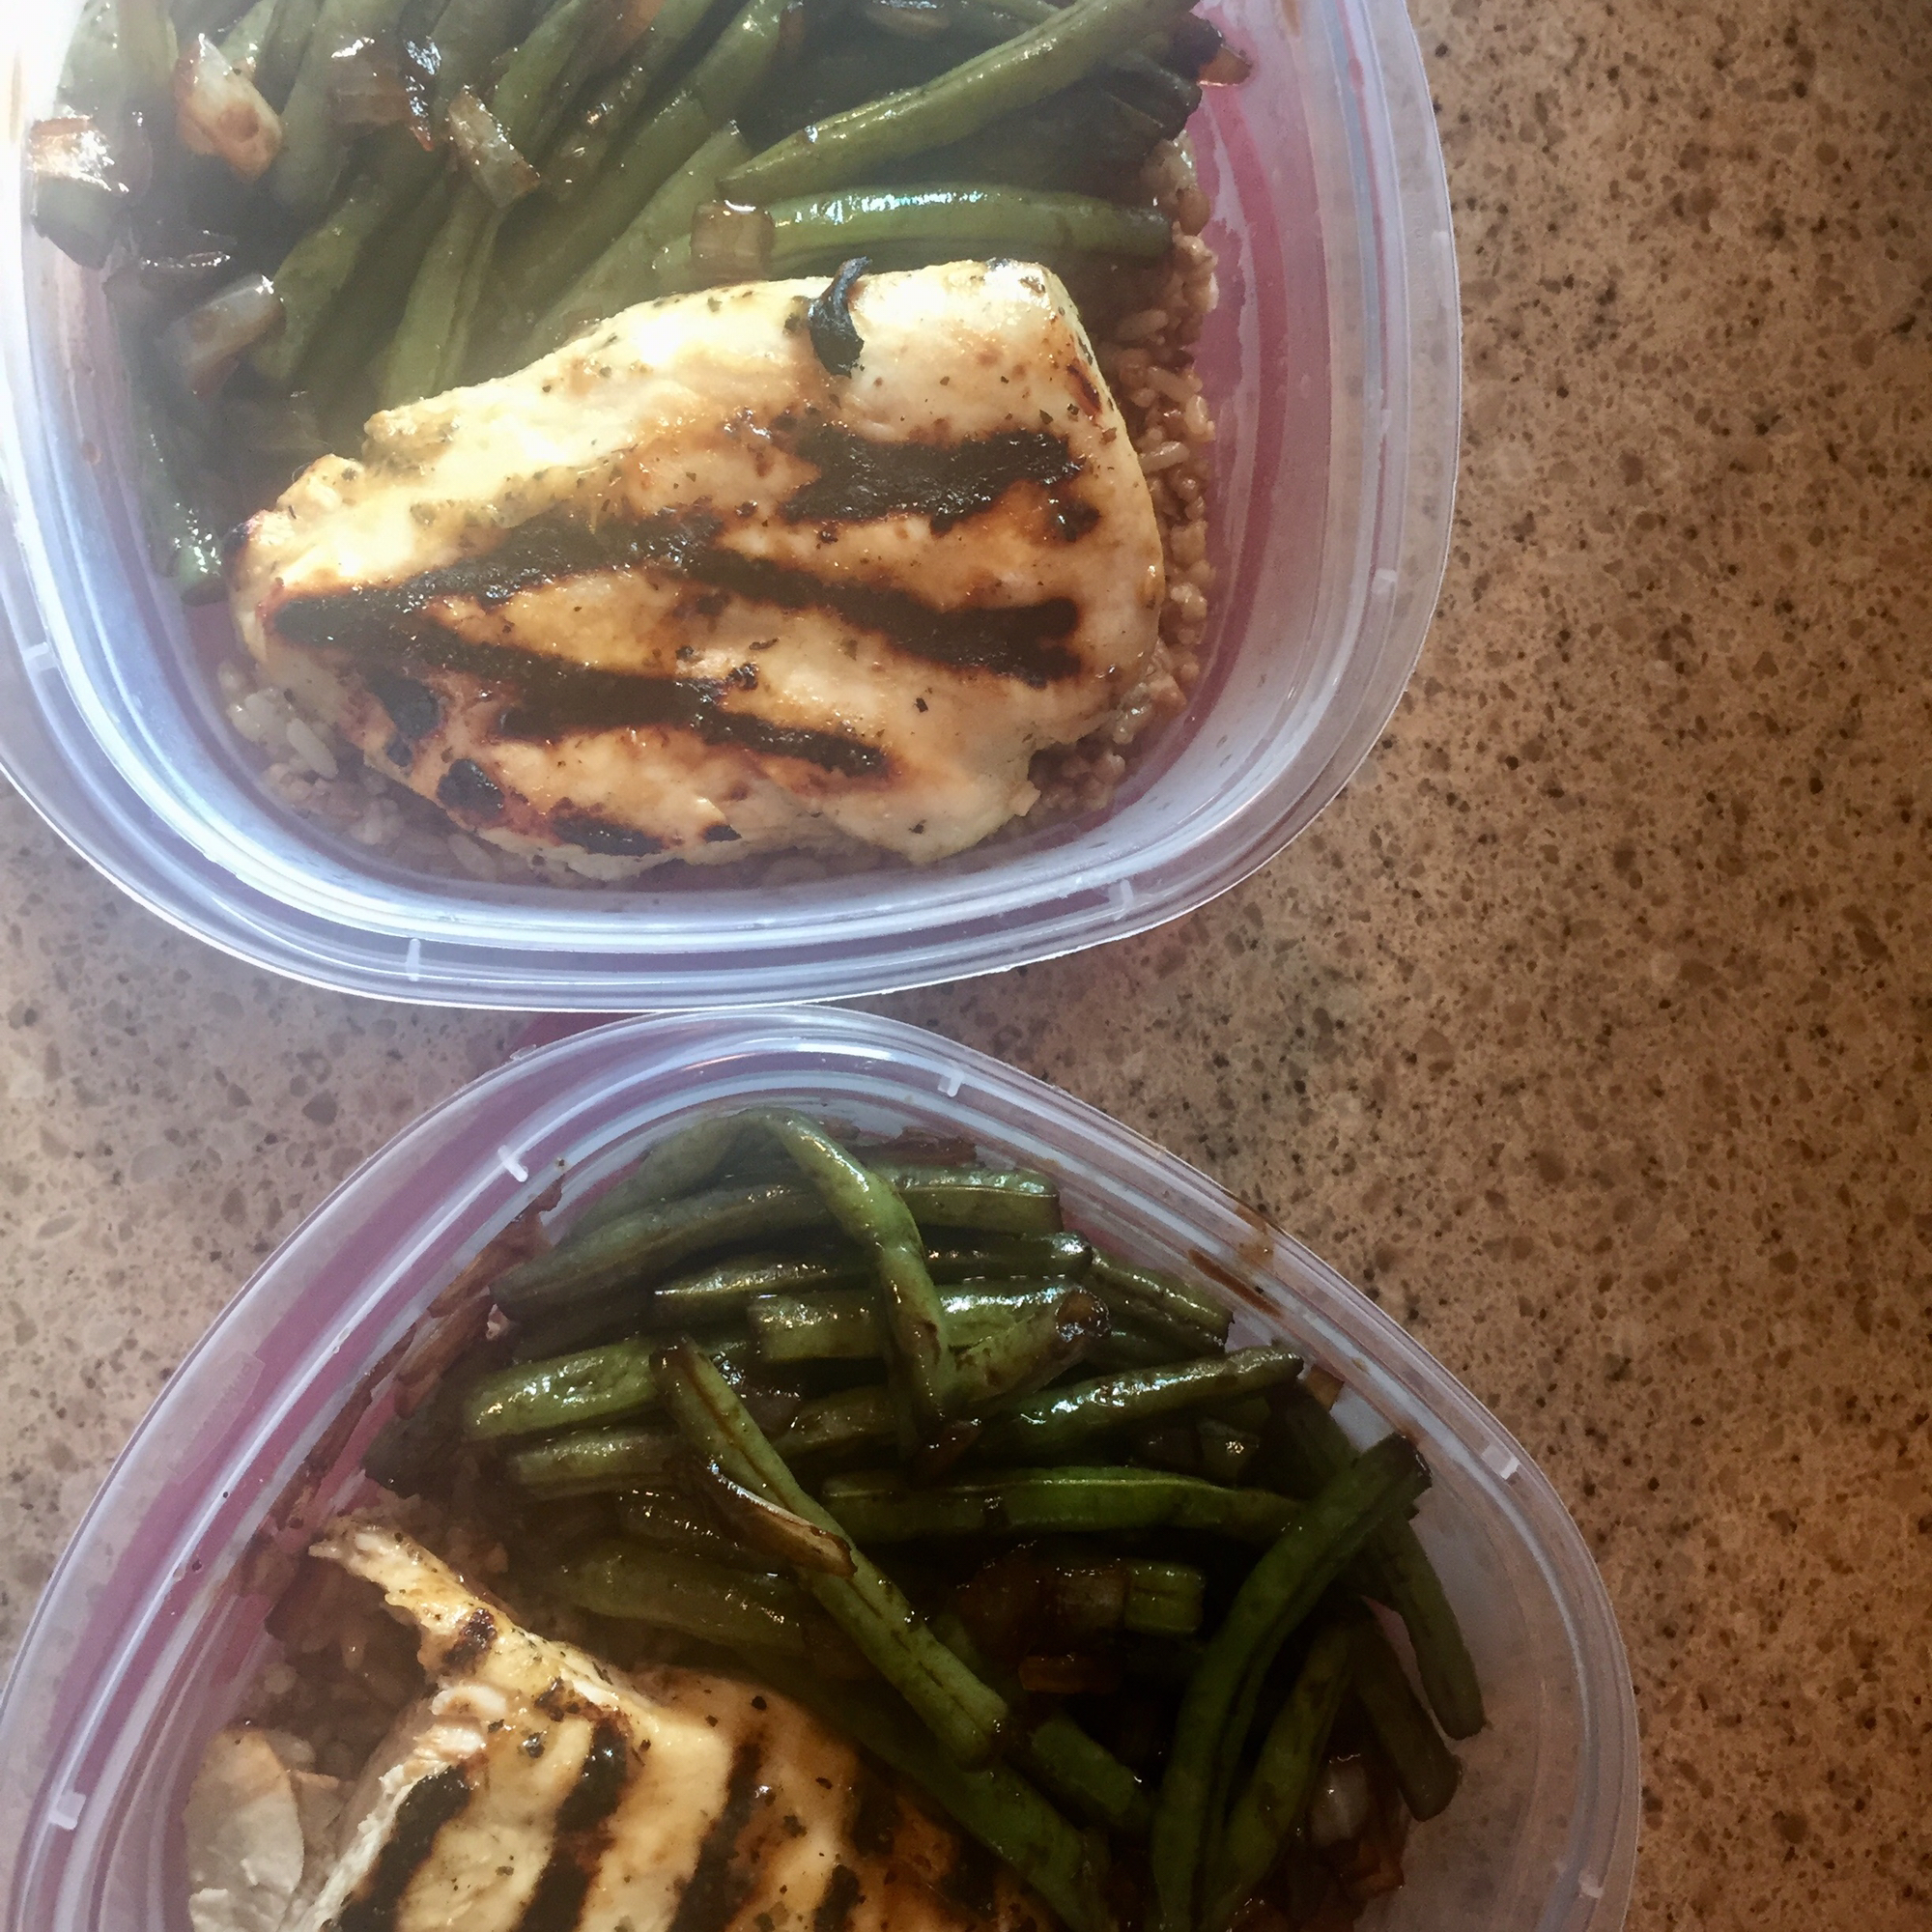 Dad's Pan-Fried Green Beans